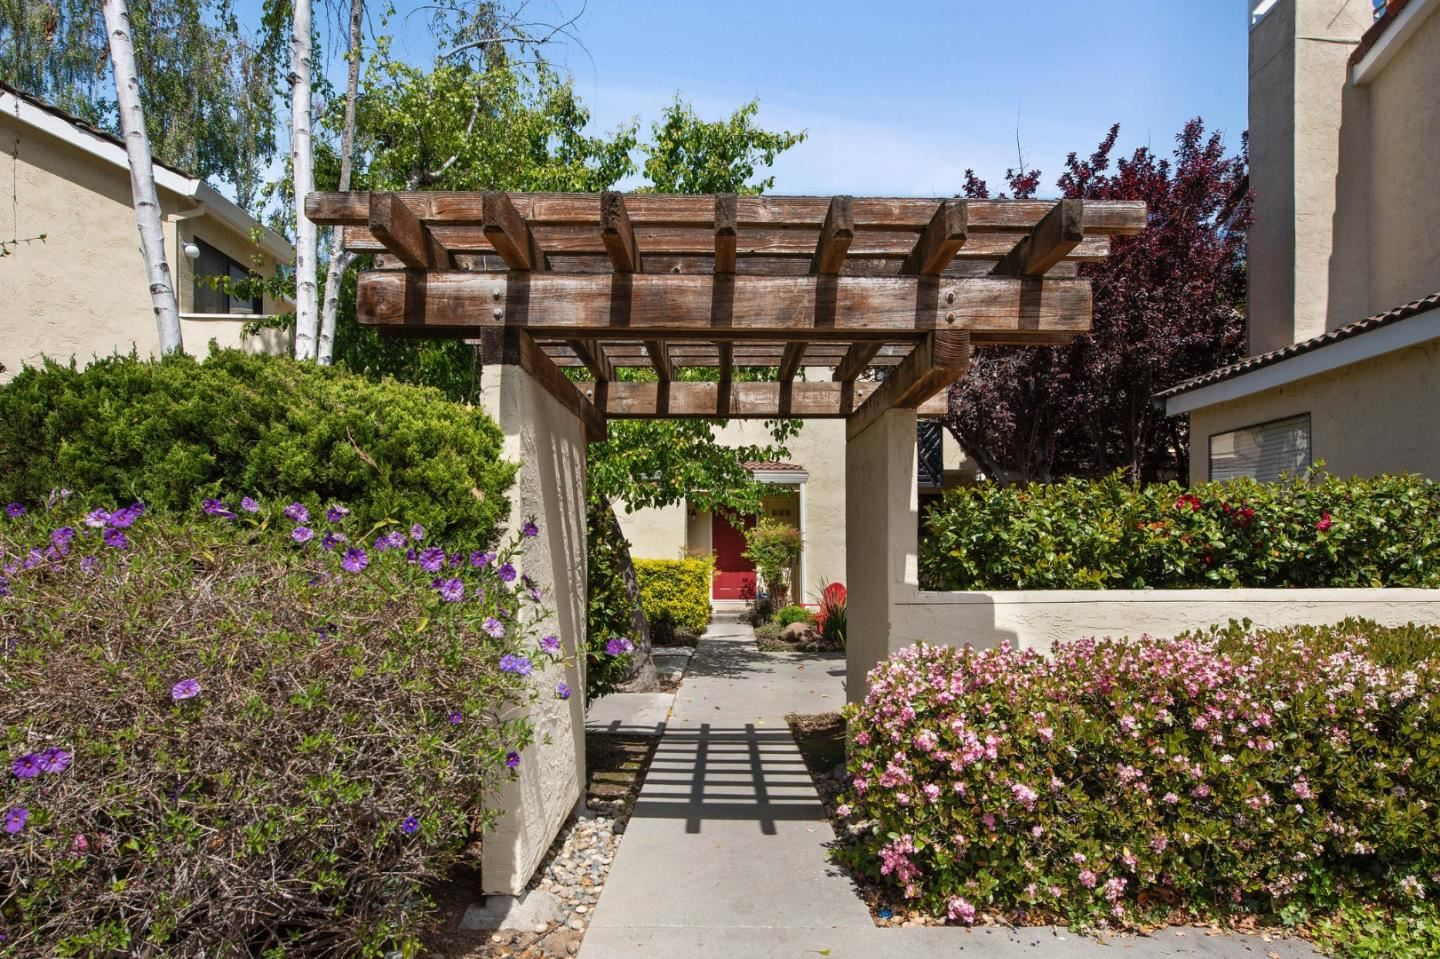 Photo for 227 Ada AVE C #C, MOUNTAIN VIEW, CA 94043 (MLS # ML81838057)